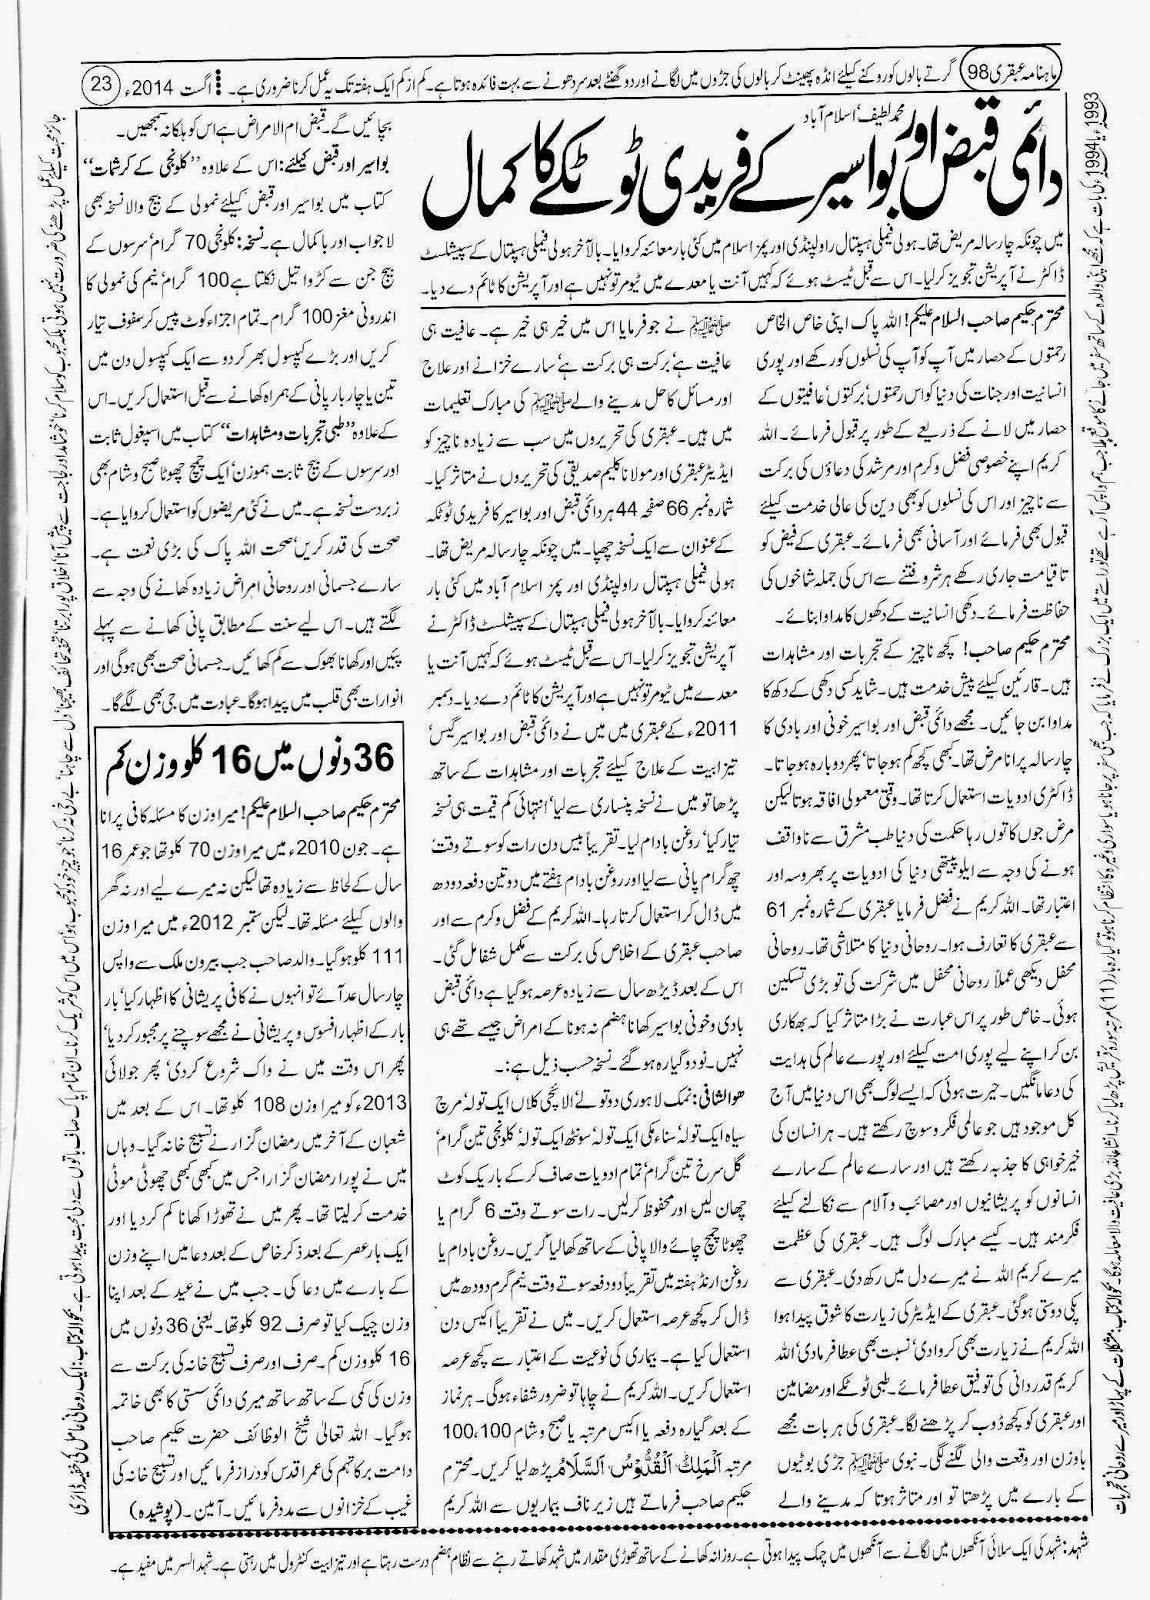 Ubqari August 2014 Page 23